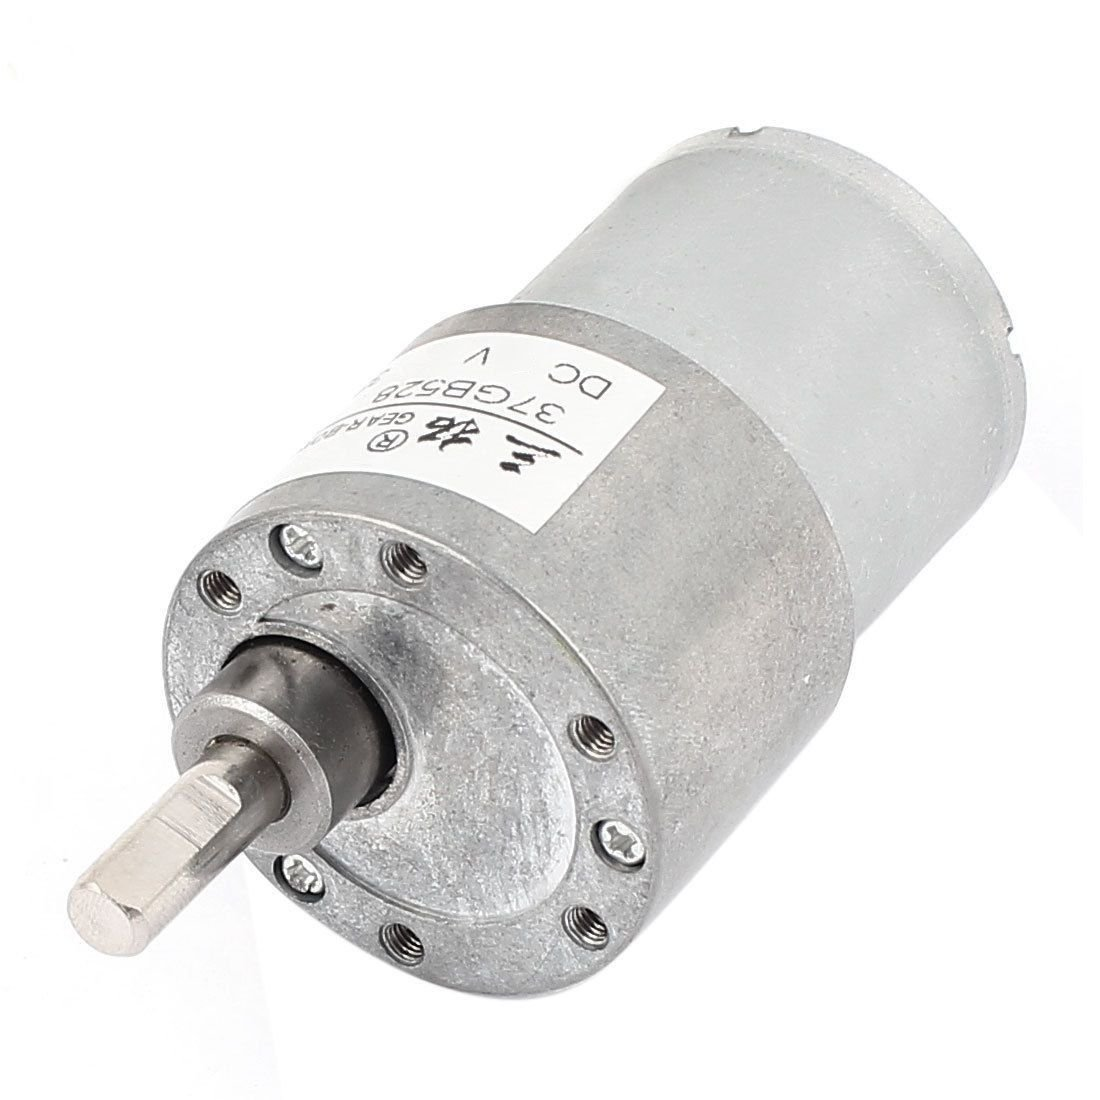 DC 24V 10RPM 0.15A 10KG.cm DC Gear Box Reducer Variable Speed Motor Reversible